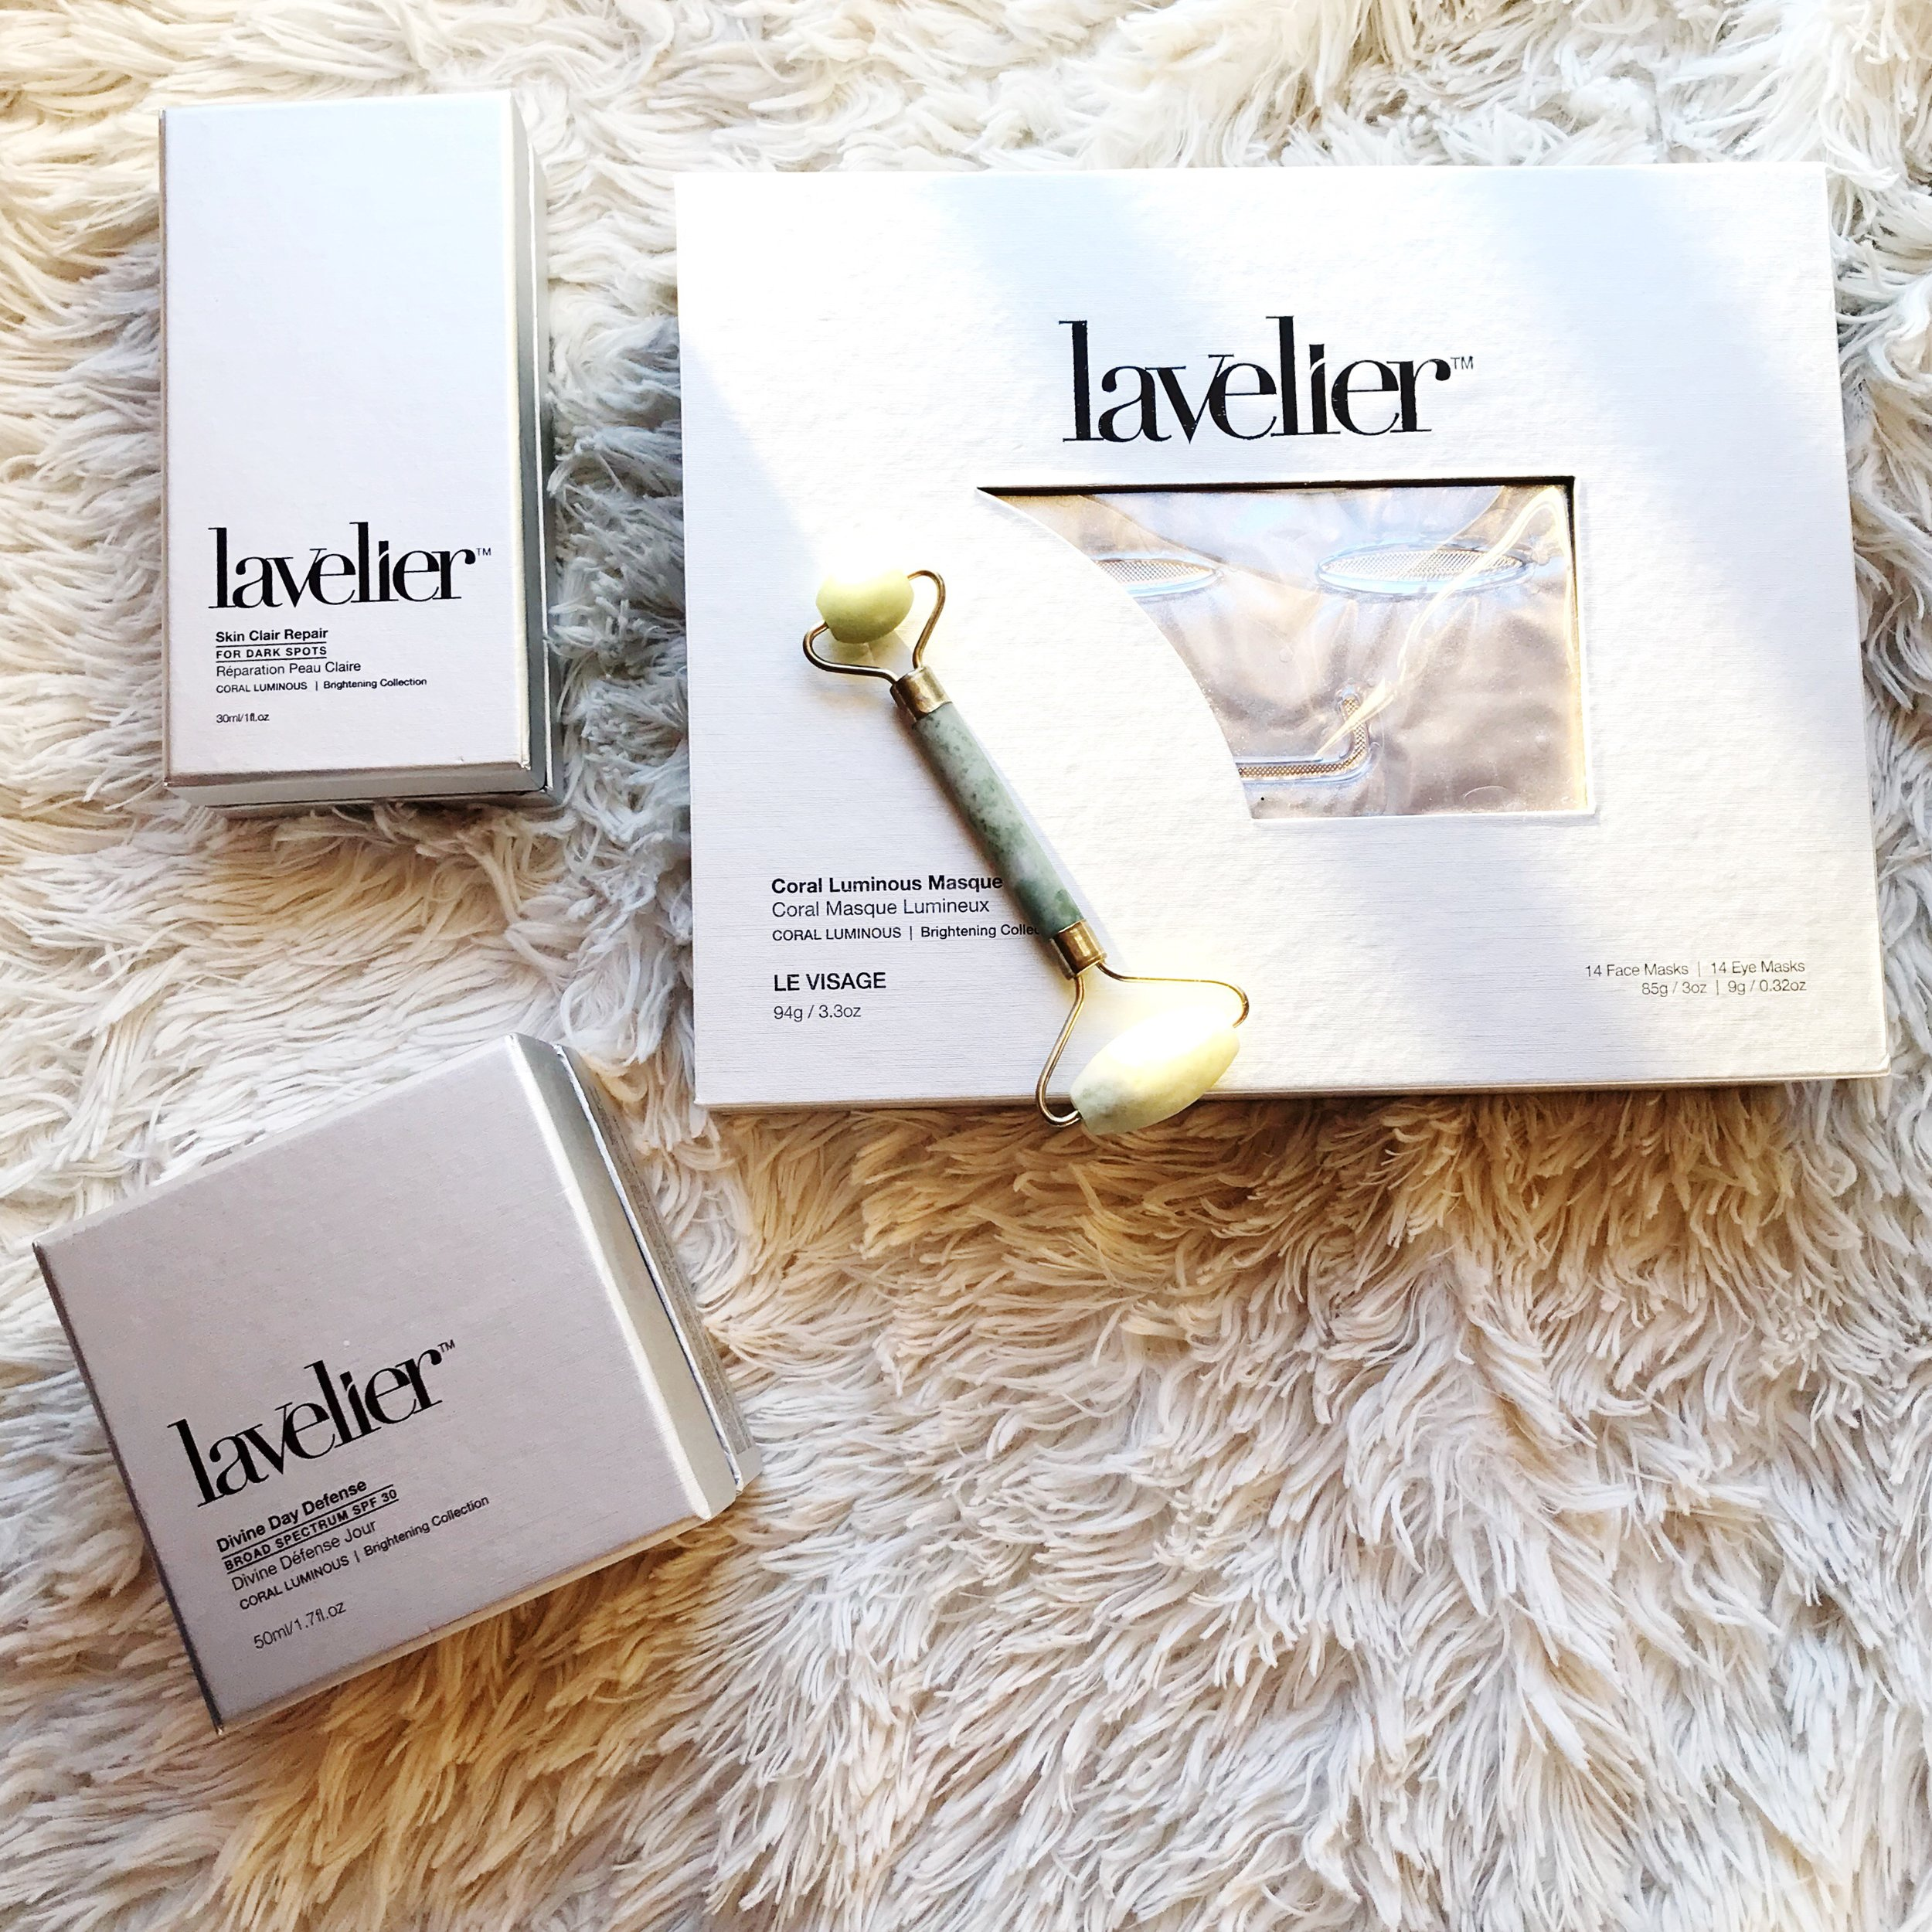 Luxury Beauty | Lavelier Skin Care Review | Mallorie Owens